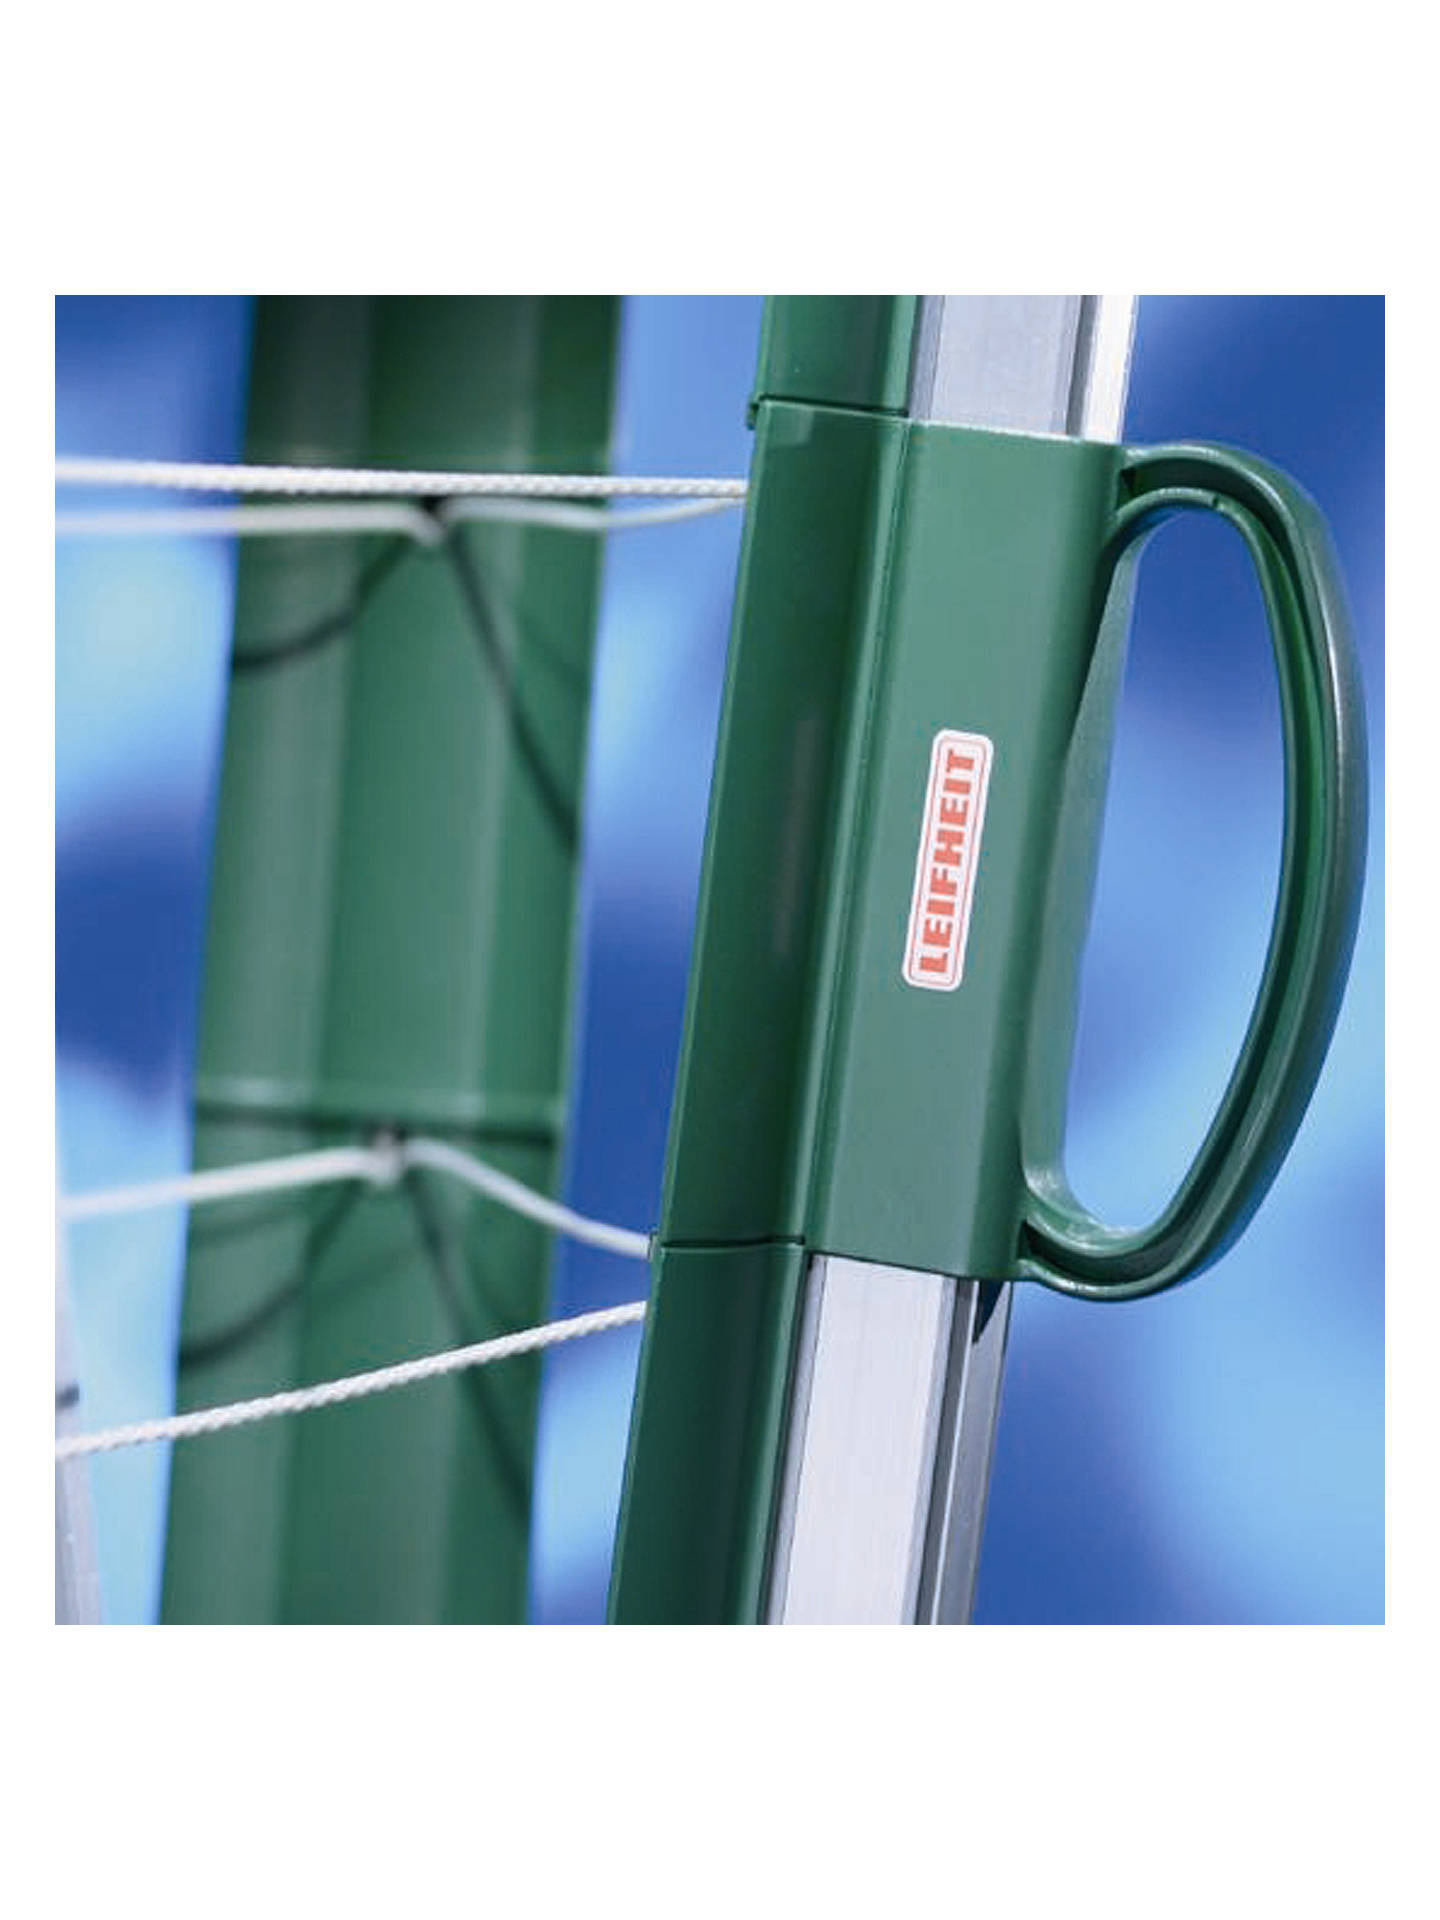 Buy Leifheit Linomatic Plus 500 Outdoor Rotary Clothes Airer Washing Line, Green Online at johnlewis.com